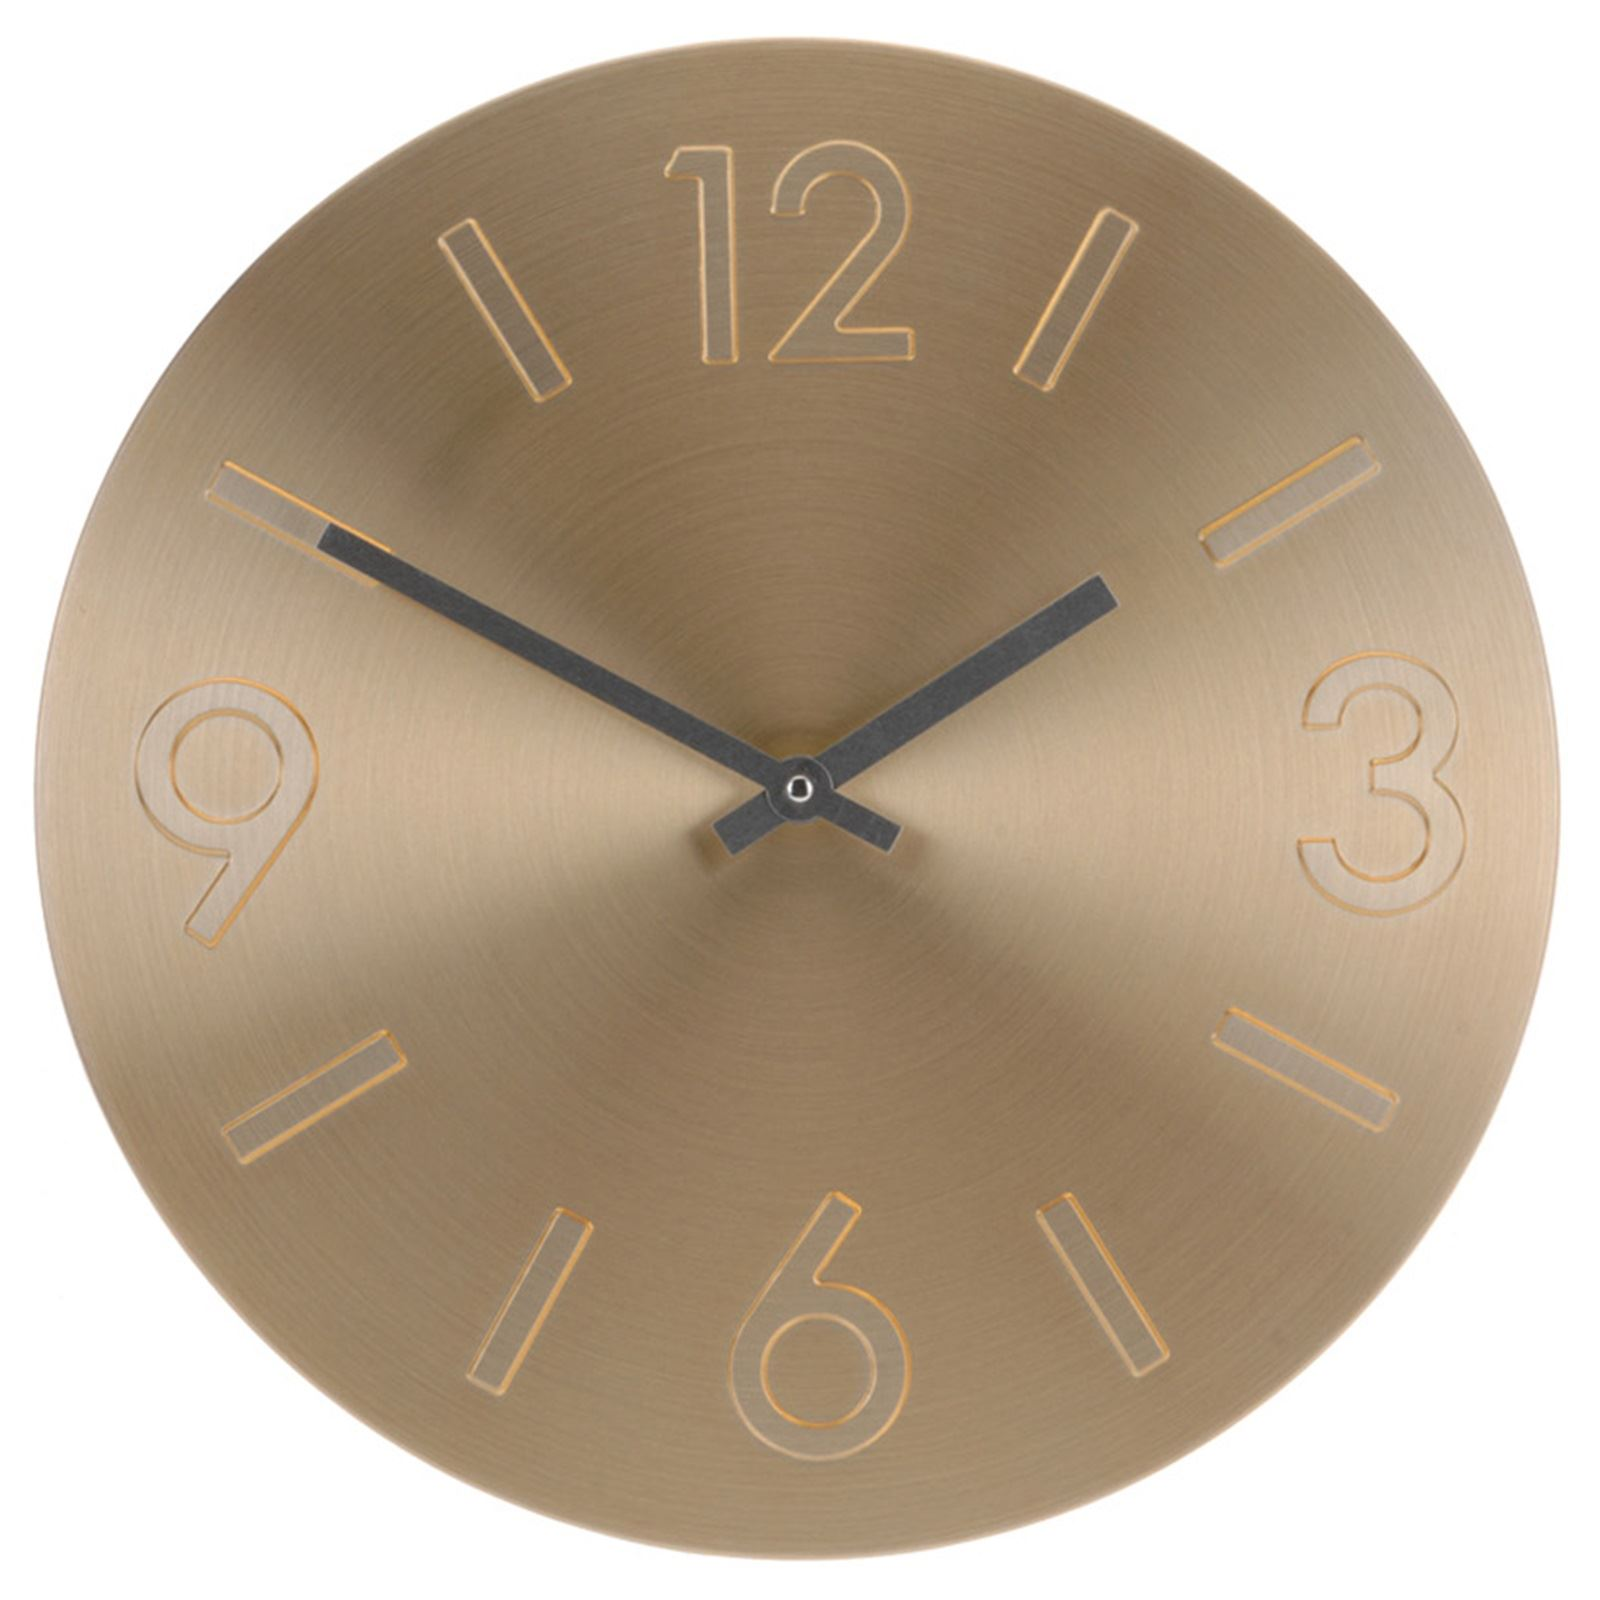 Large round aluminium wall clock modern number time kitchen bedroom display new